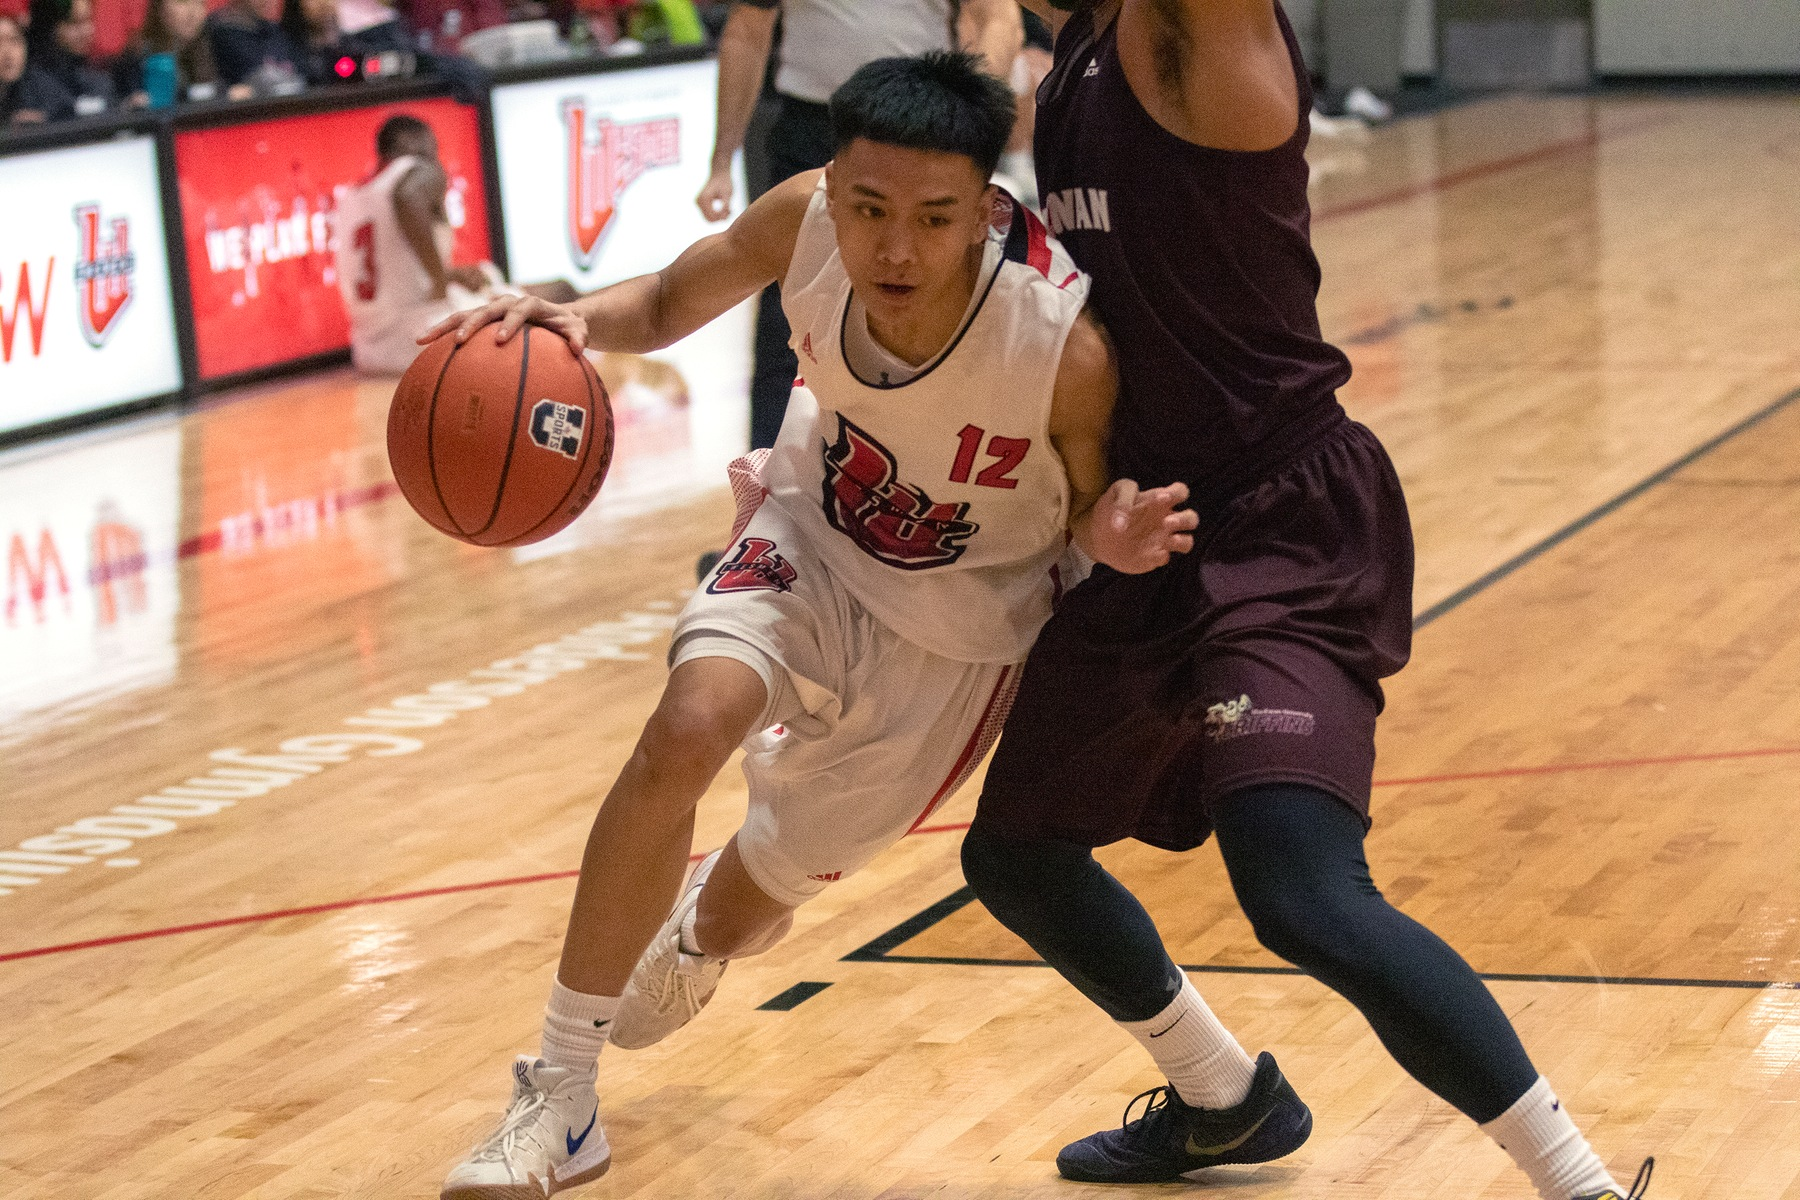 Don Dayrit scored 22 points to lead the Wesmen to a win in Kelowna on Saturday, Jan. 25, 2020. (David Larkins/Wesmen Athletics file)